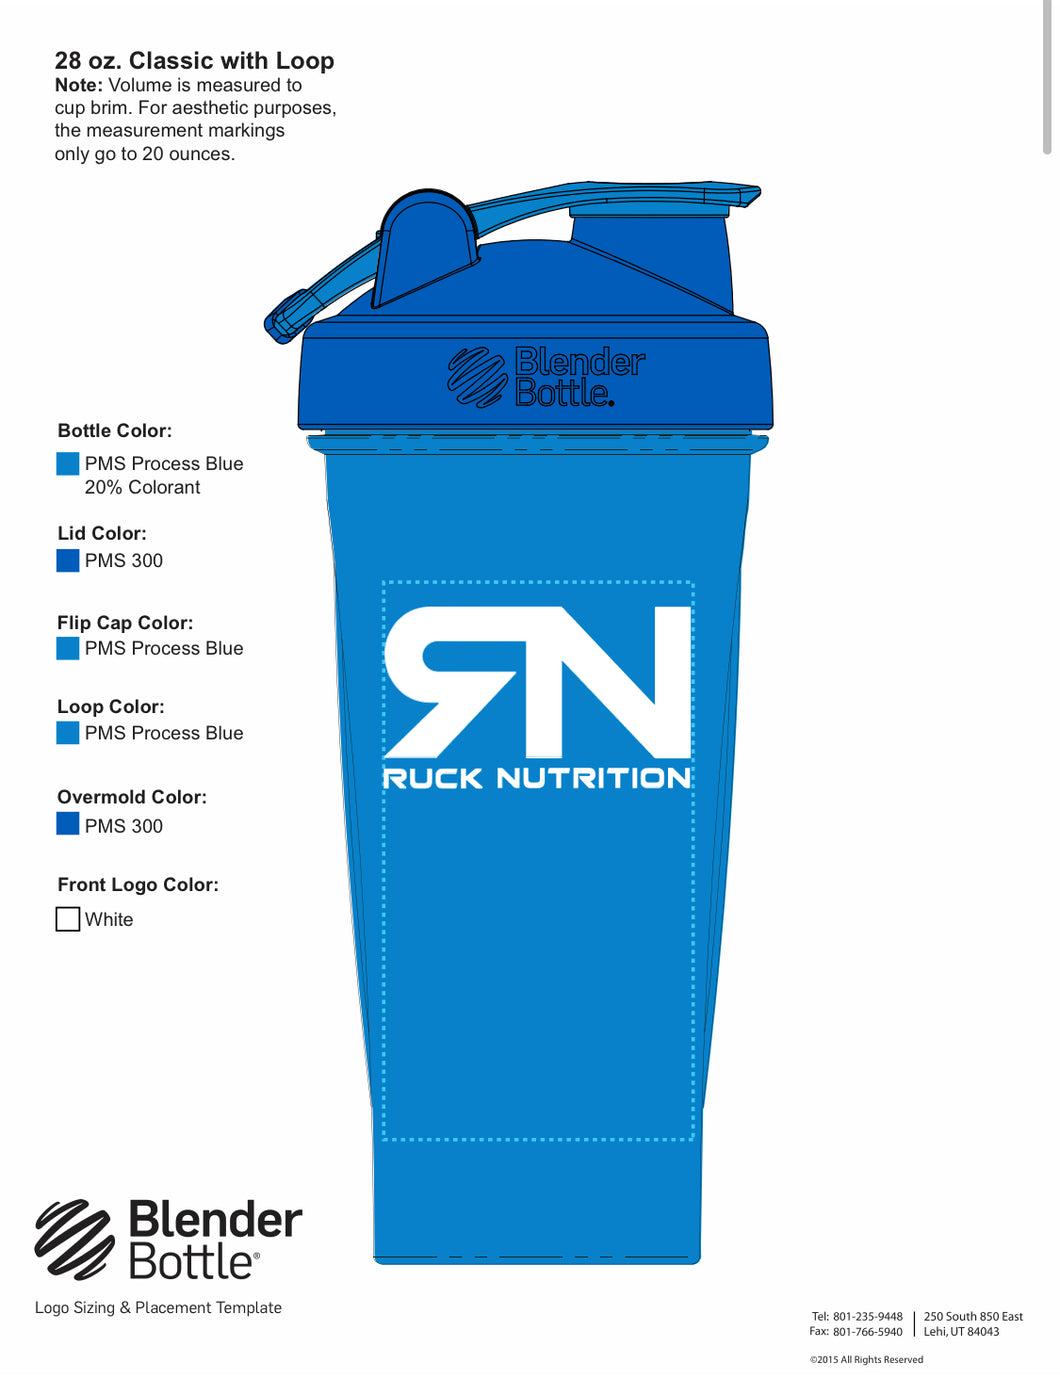 28 oz. Classic Ruck Blender Bottle